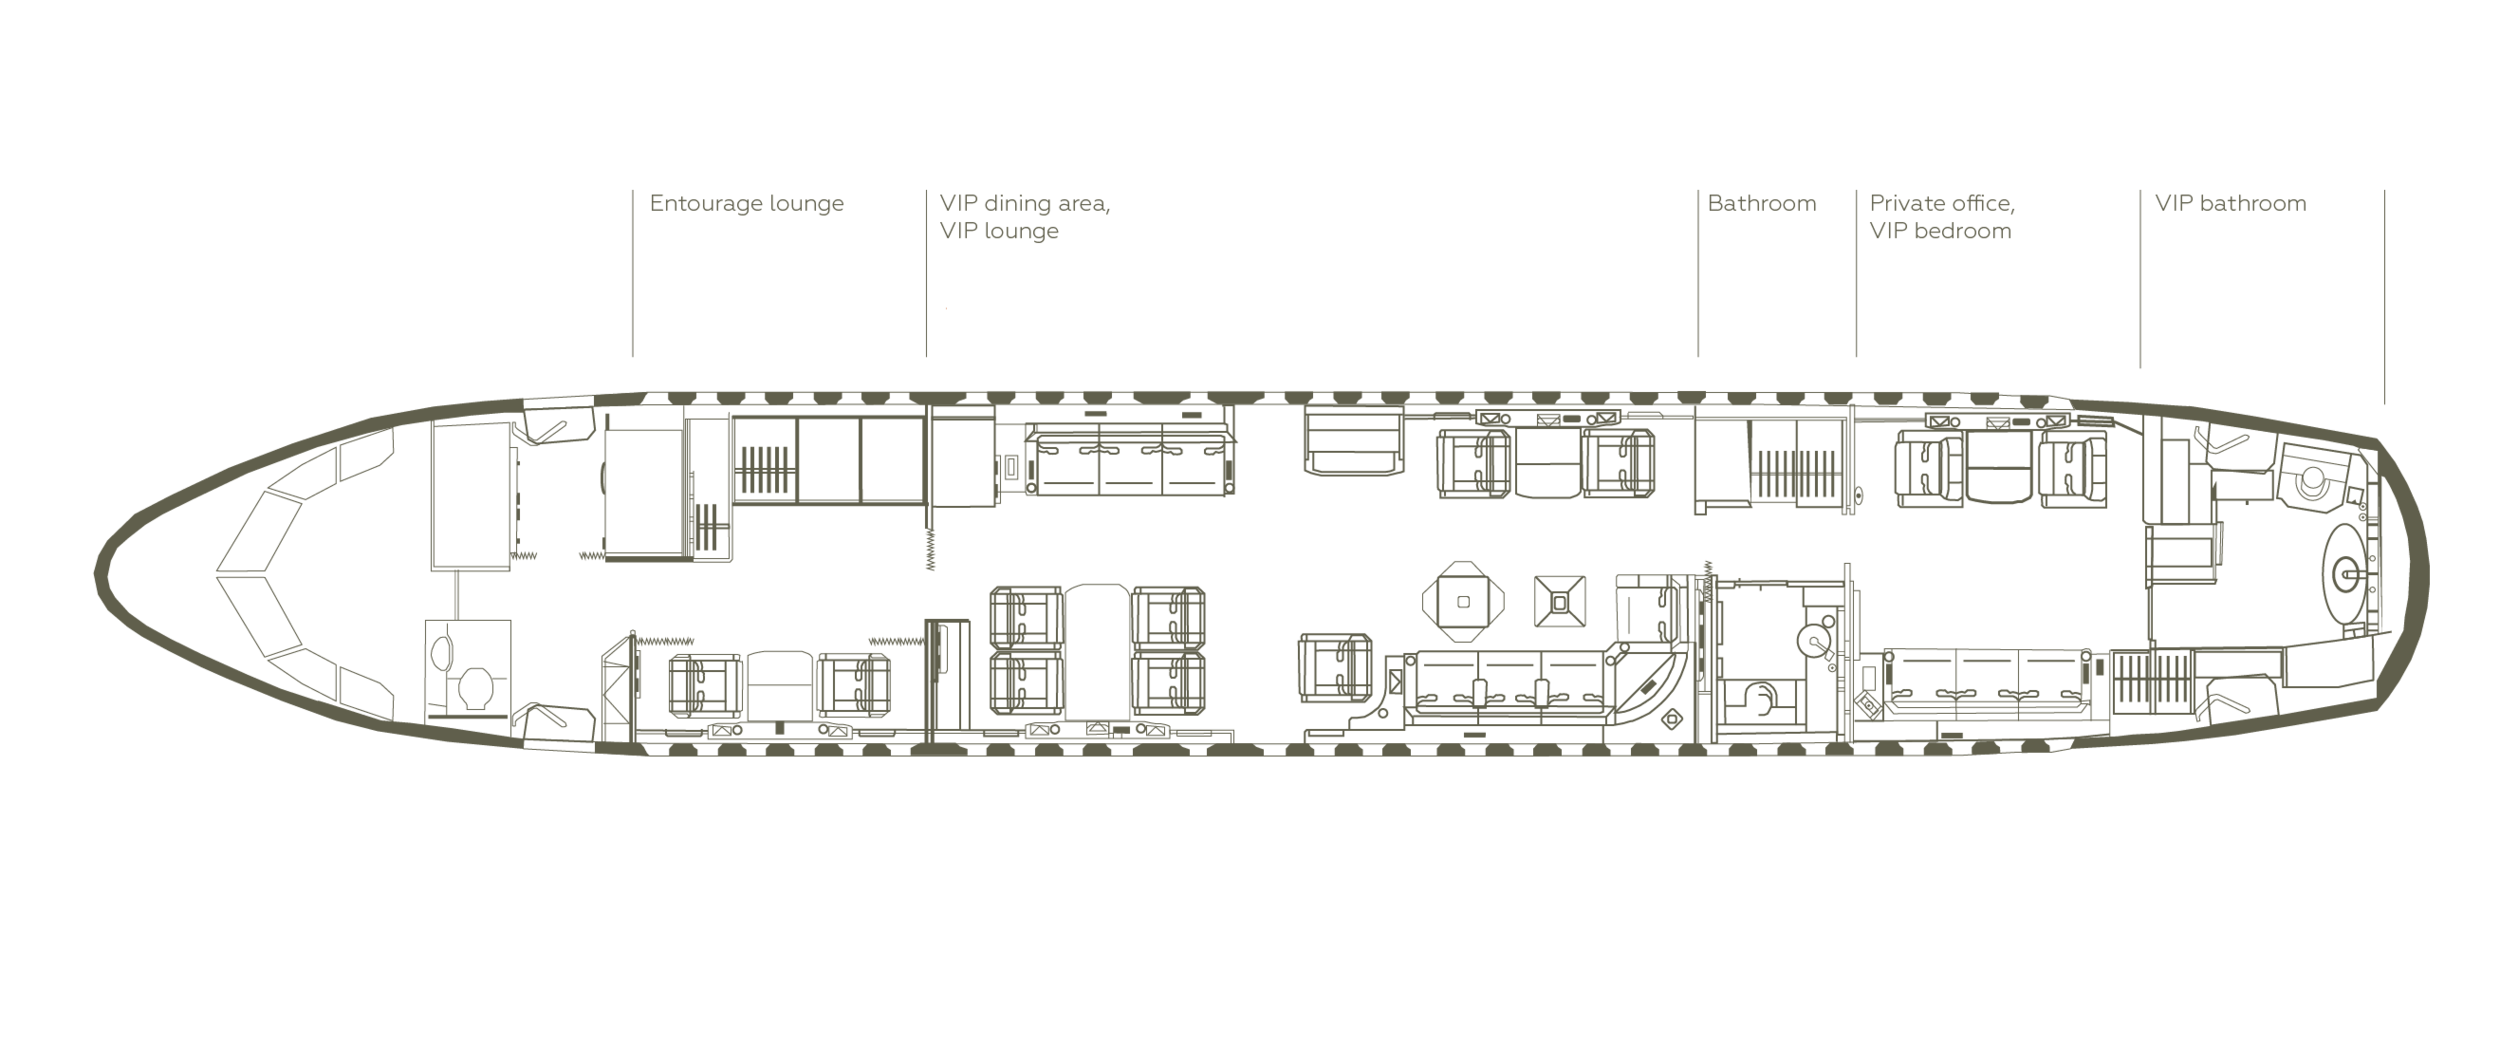 Airbus-floor-plan-horizontal-small.png